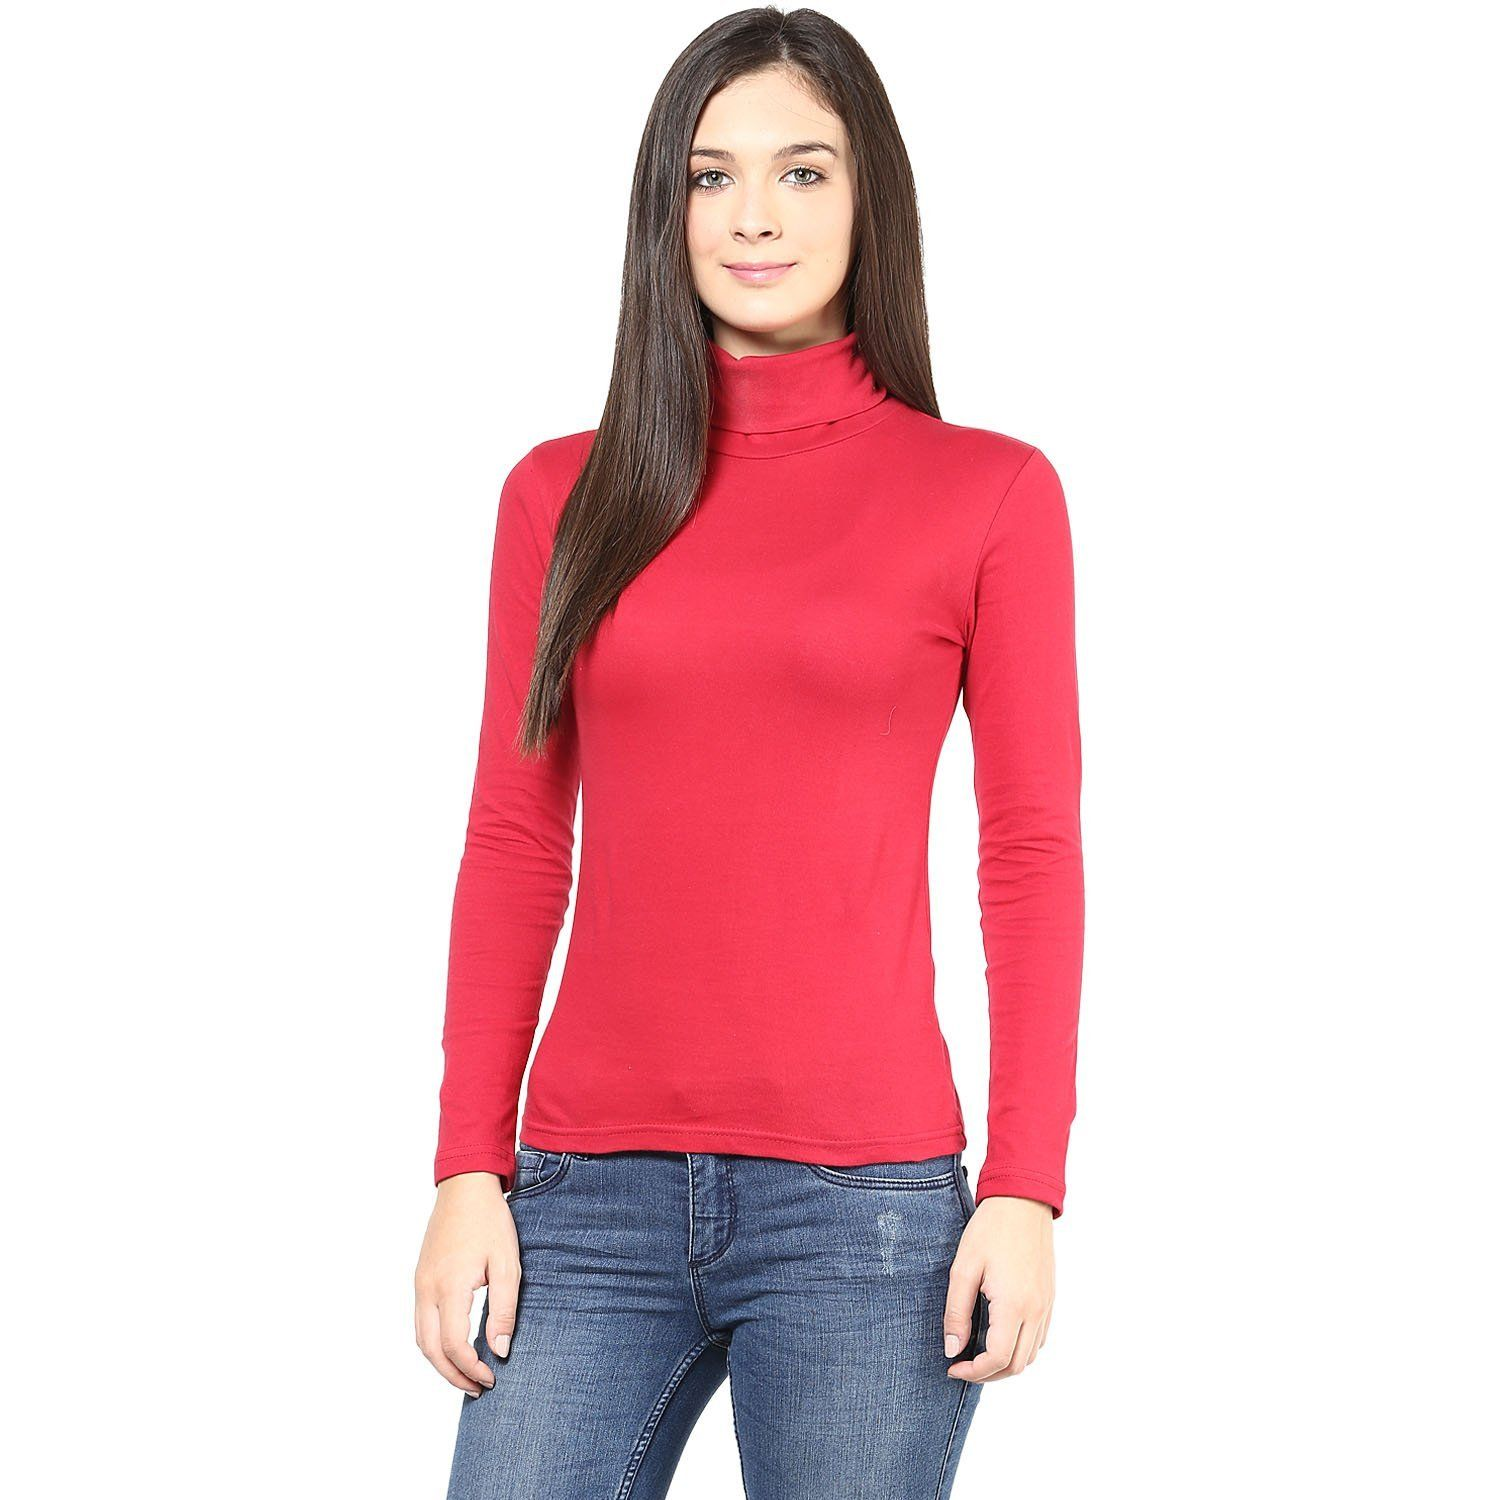 hypernation red cotton high neck t shirts for women color red